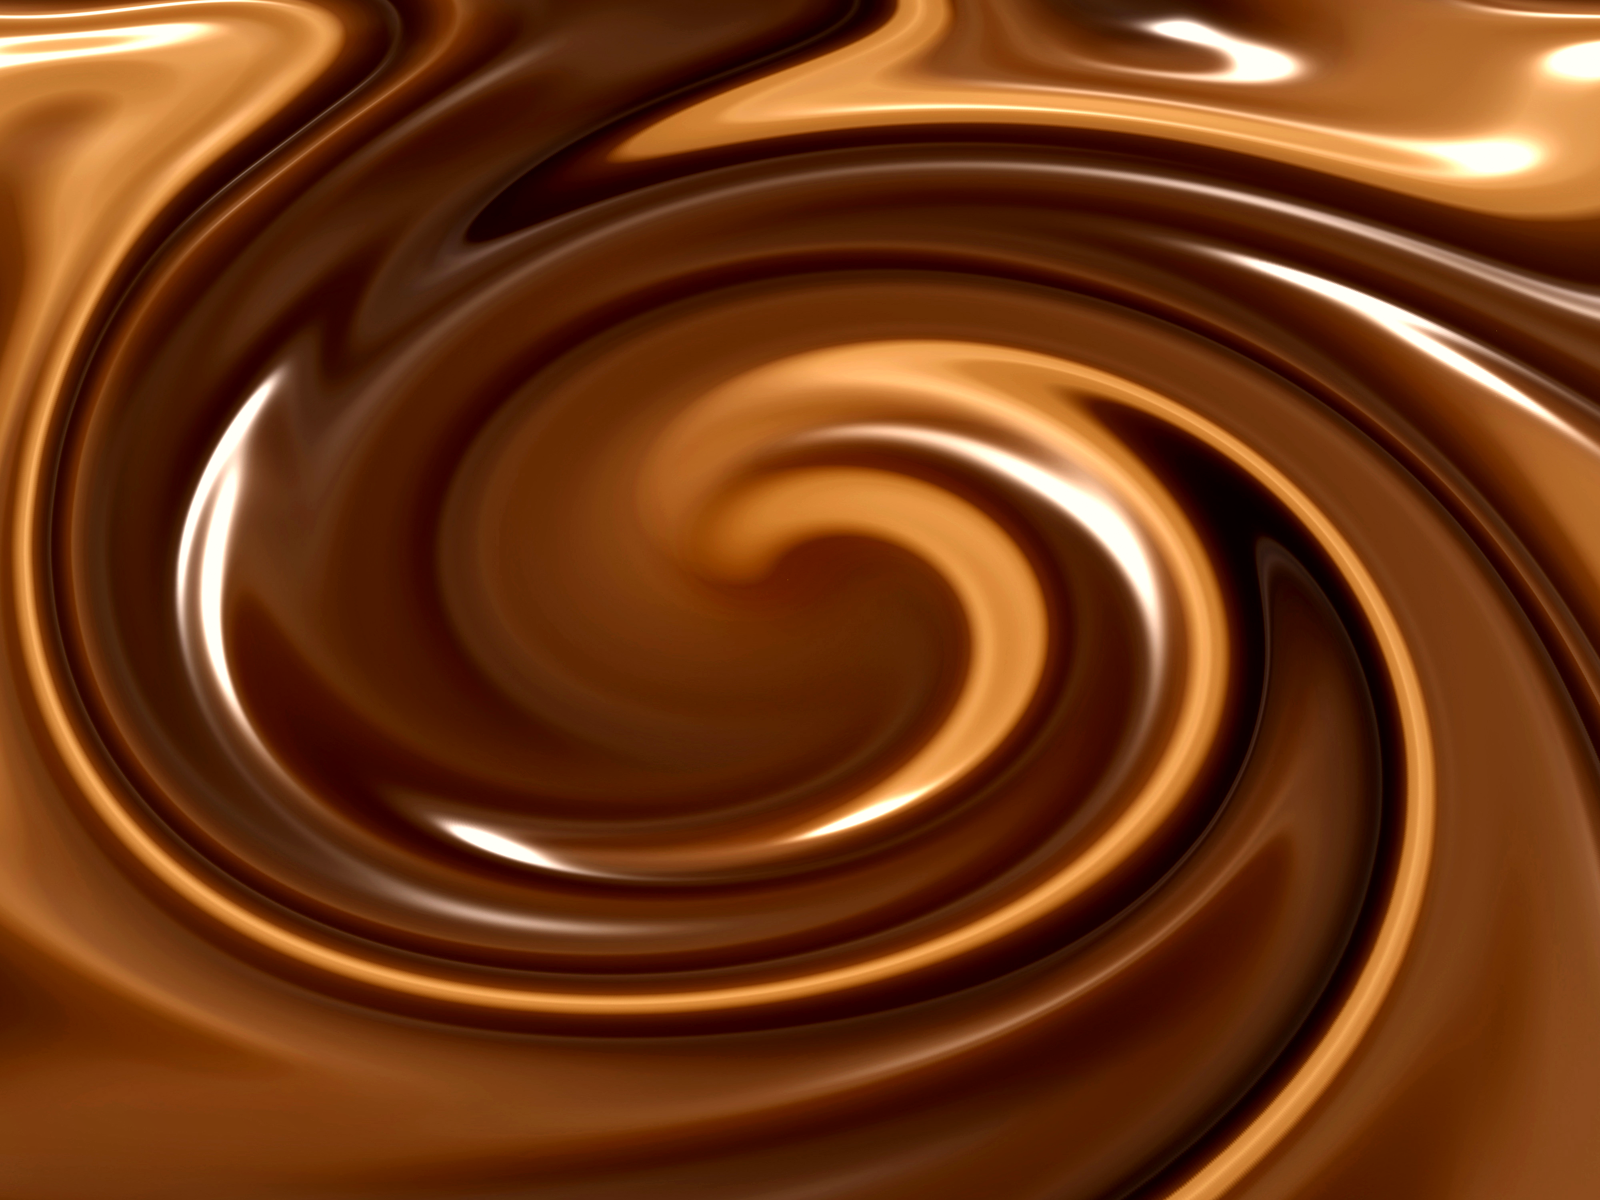 Chocolate Candy Wallpaper 33 Background Wallpaper   Hivewallpapercom 1600x1200